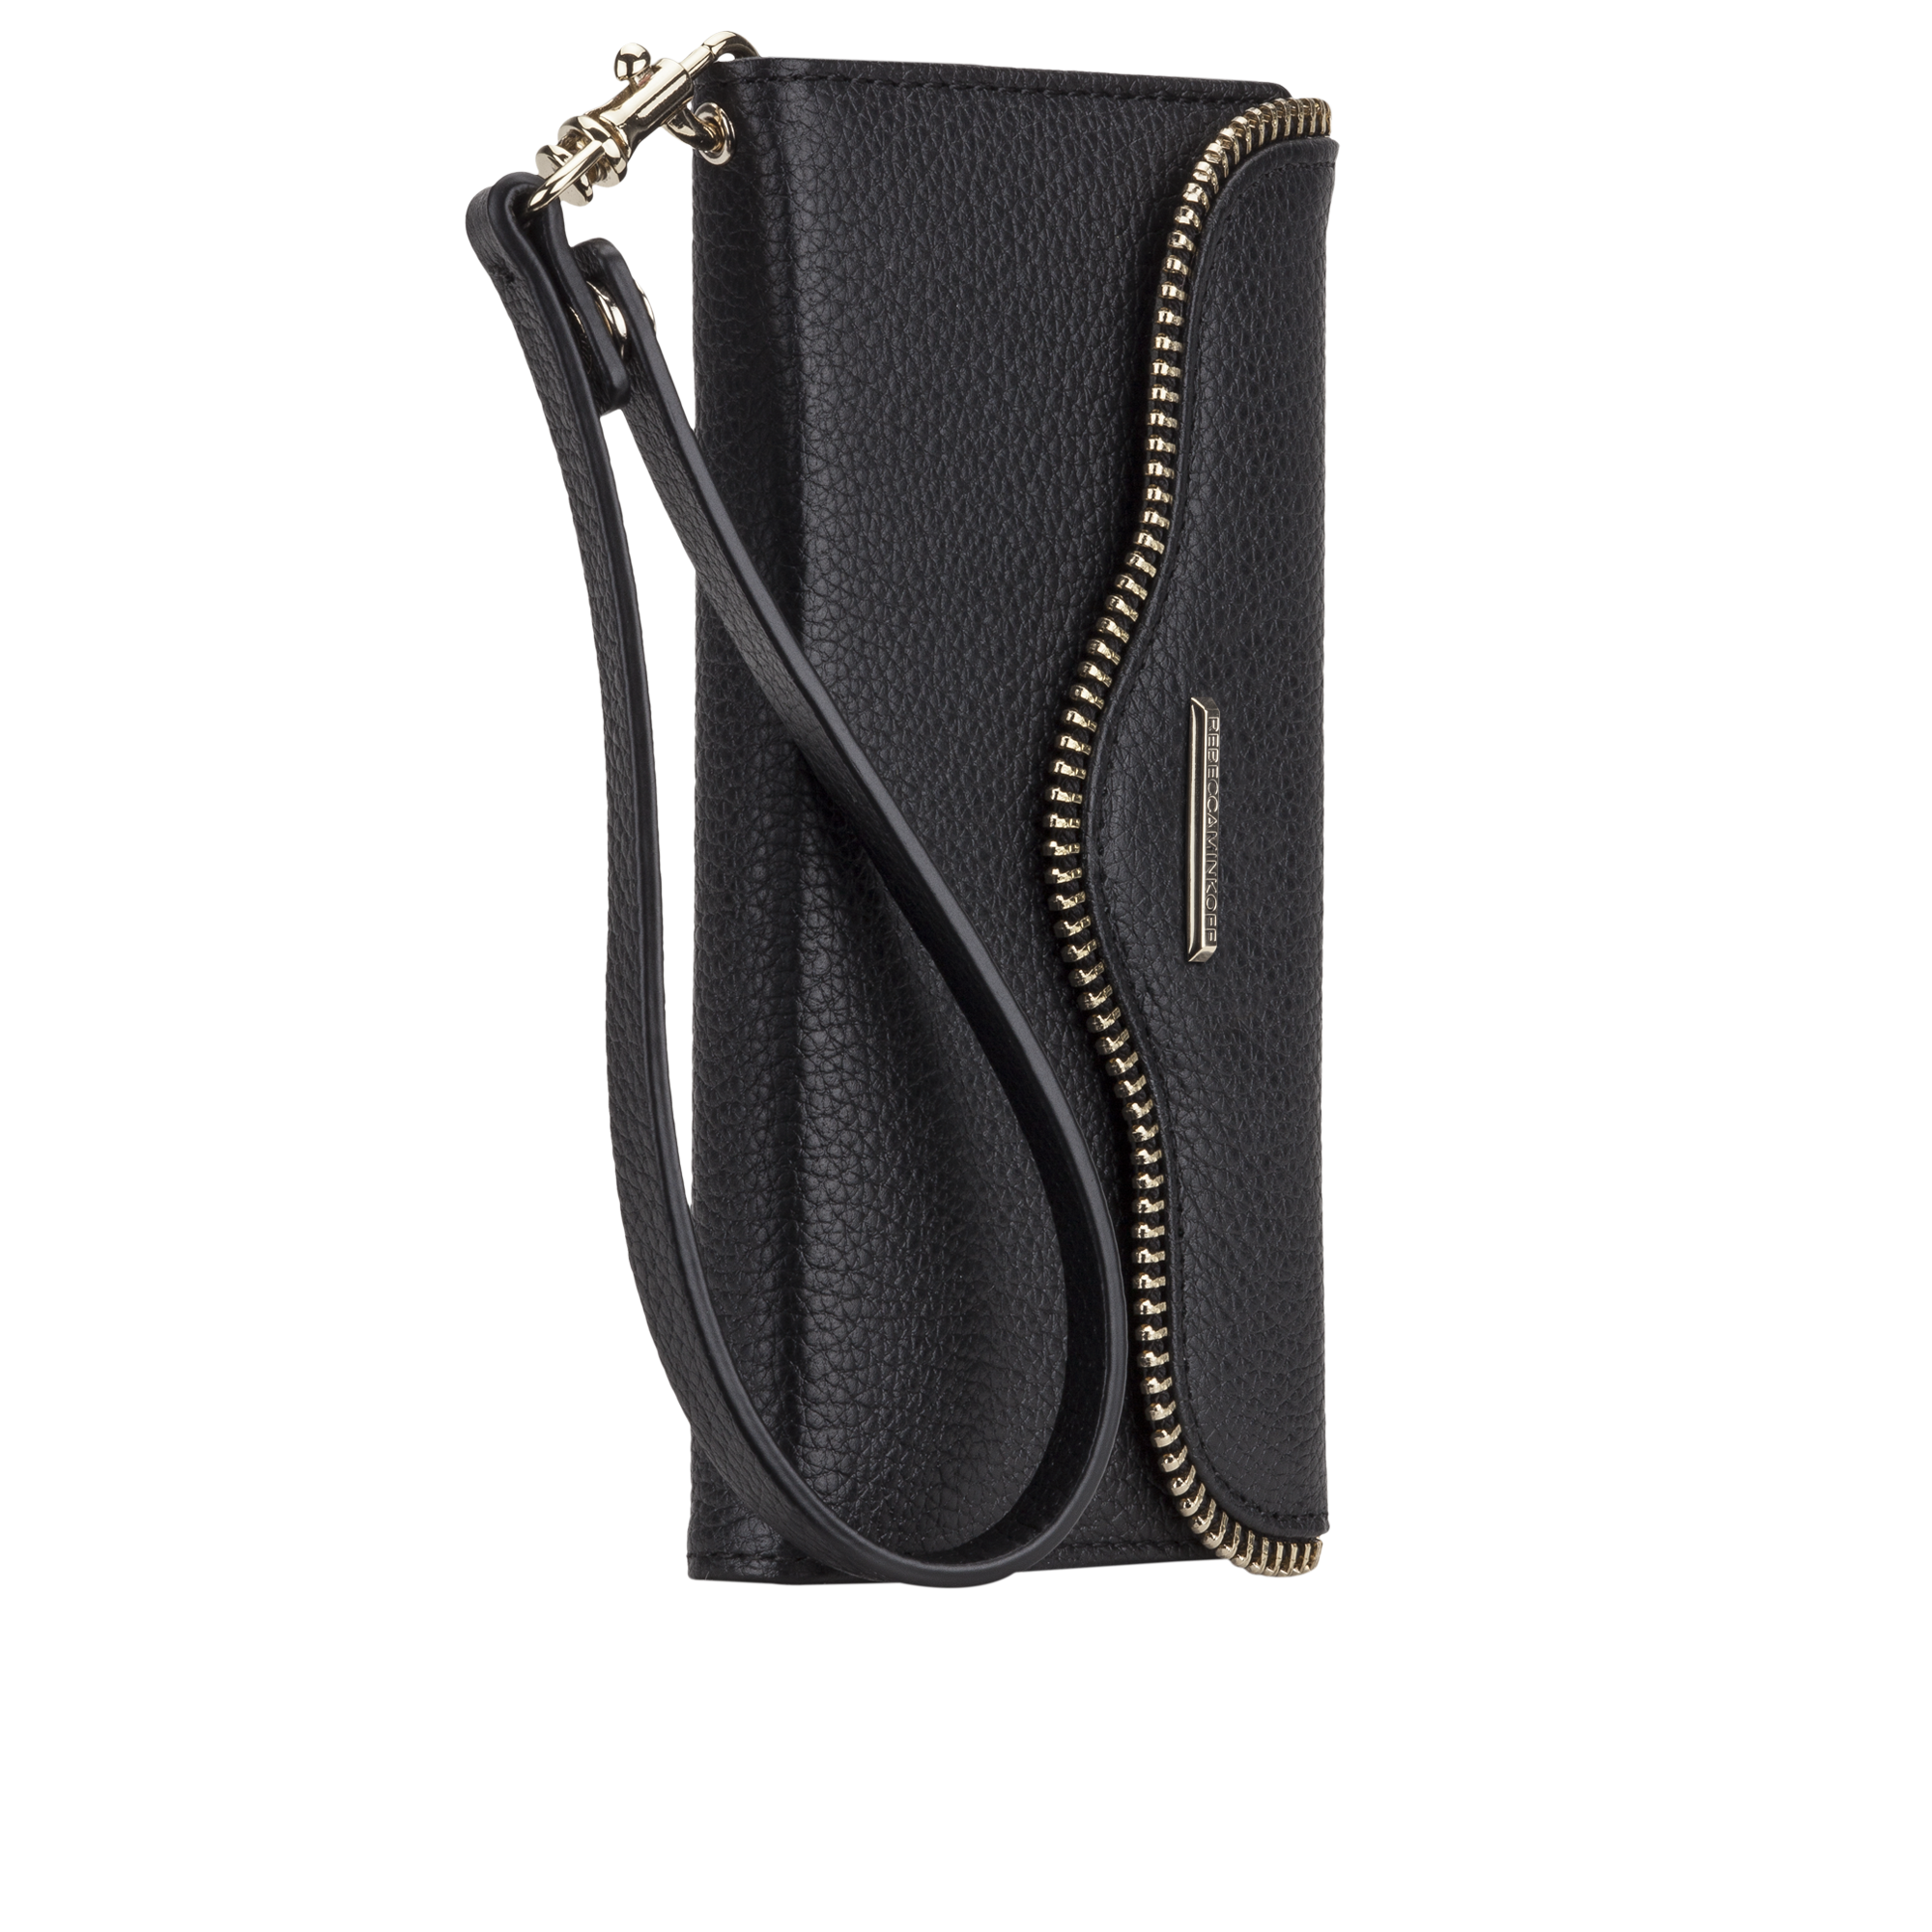 Rebecca Minkoff Leather Wristlet - Black